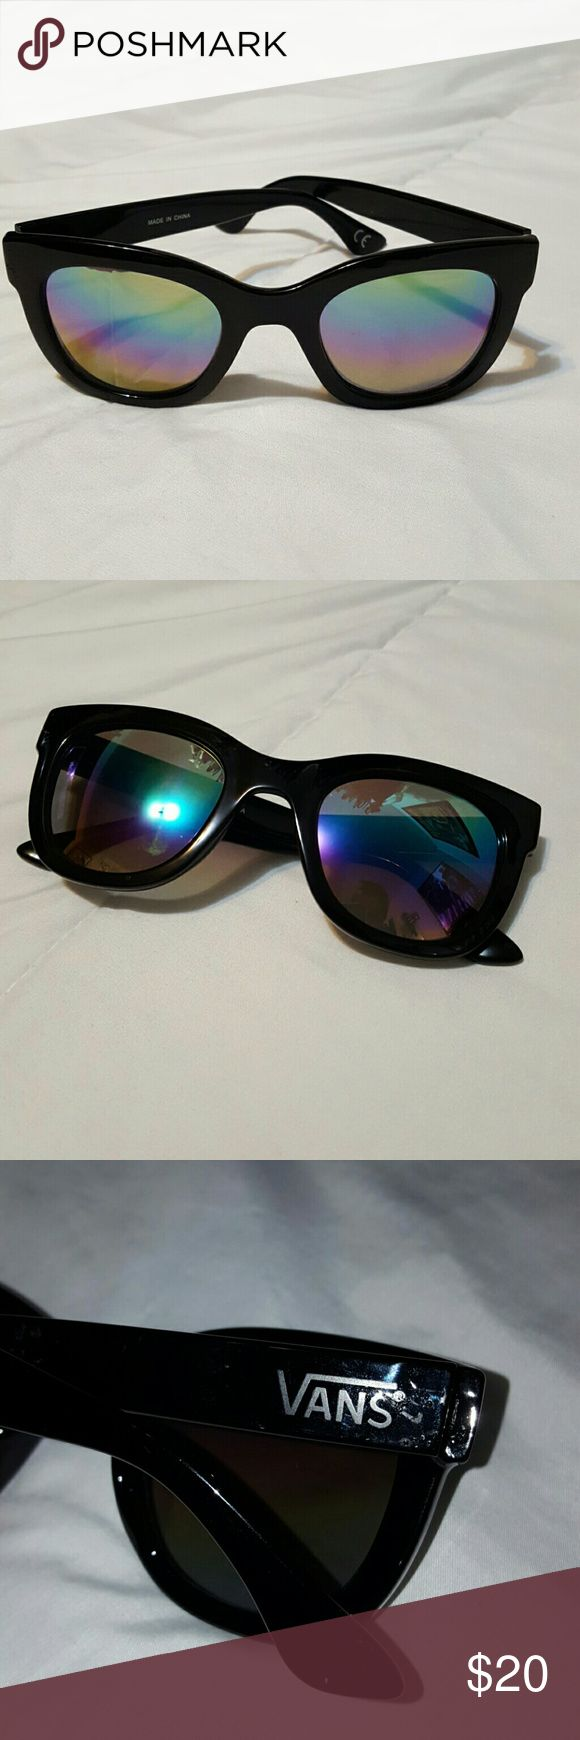 Vans sunnies Oil slick color lenses. Black frames. Good shape. Slight defect, as shown in 3rd picture, no other flaws!! Fresh n cool! Vans Accessories Sunglasses